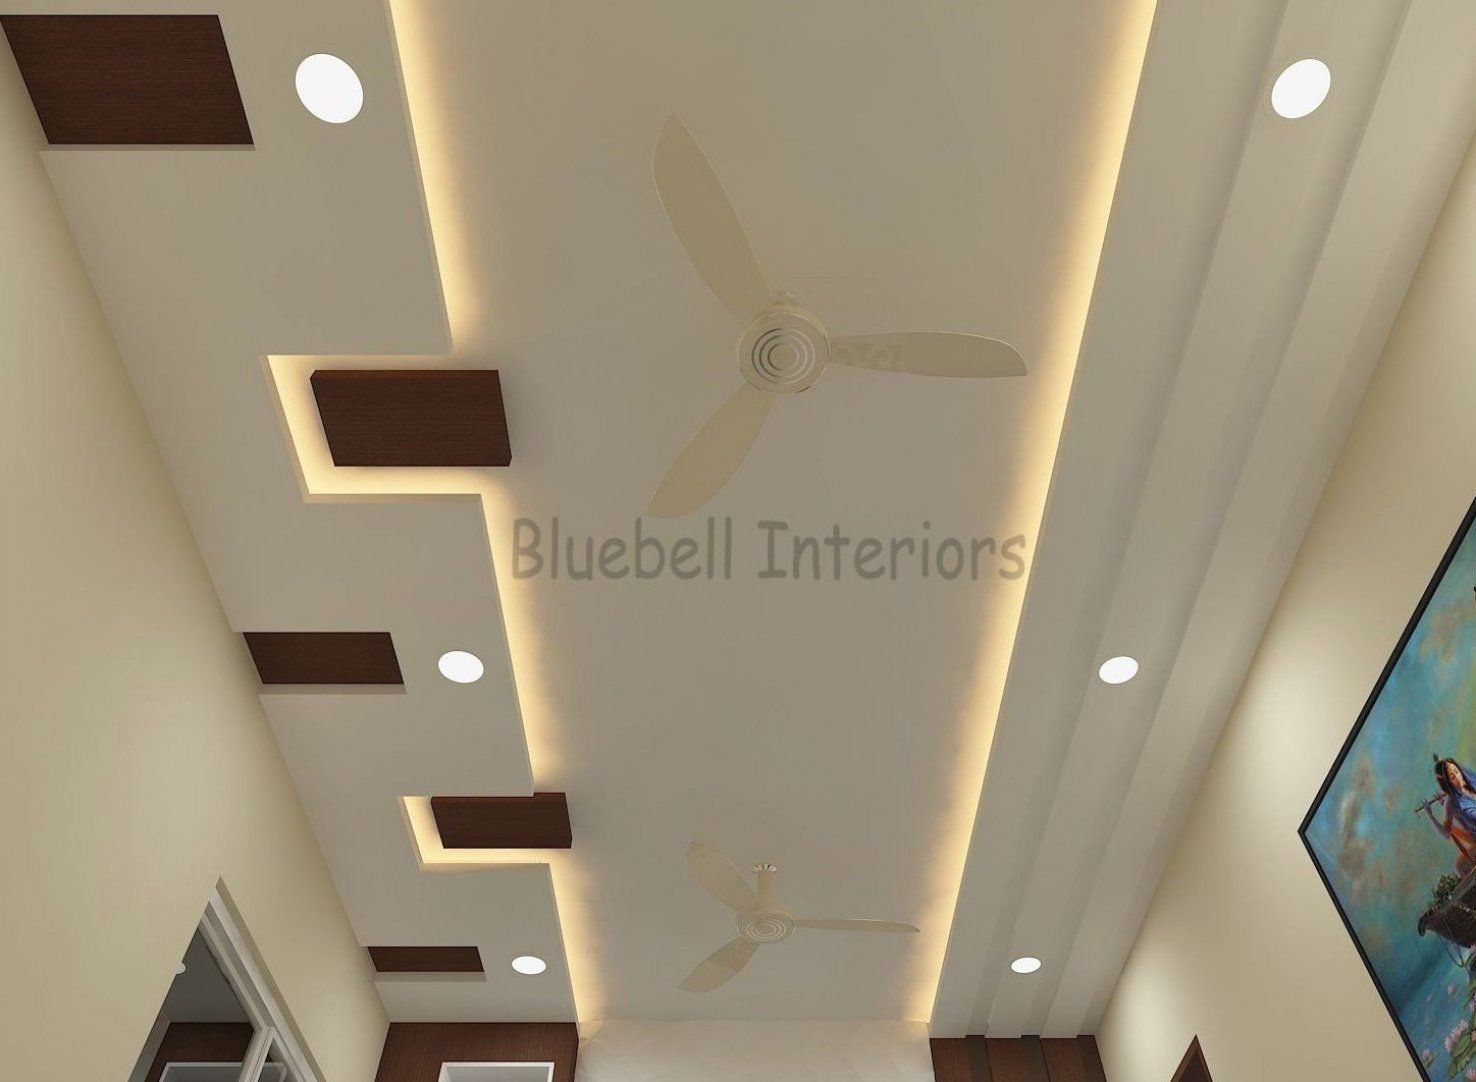 A Combination A Wood Gypsum Ceiling With Concealed Lighting Livingroomdecor Homedeco In 2020 Ceiling Design Modern Ceiling Design Living Room House Ceiling Design